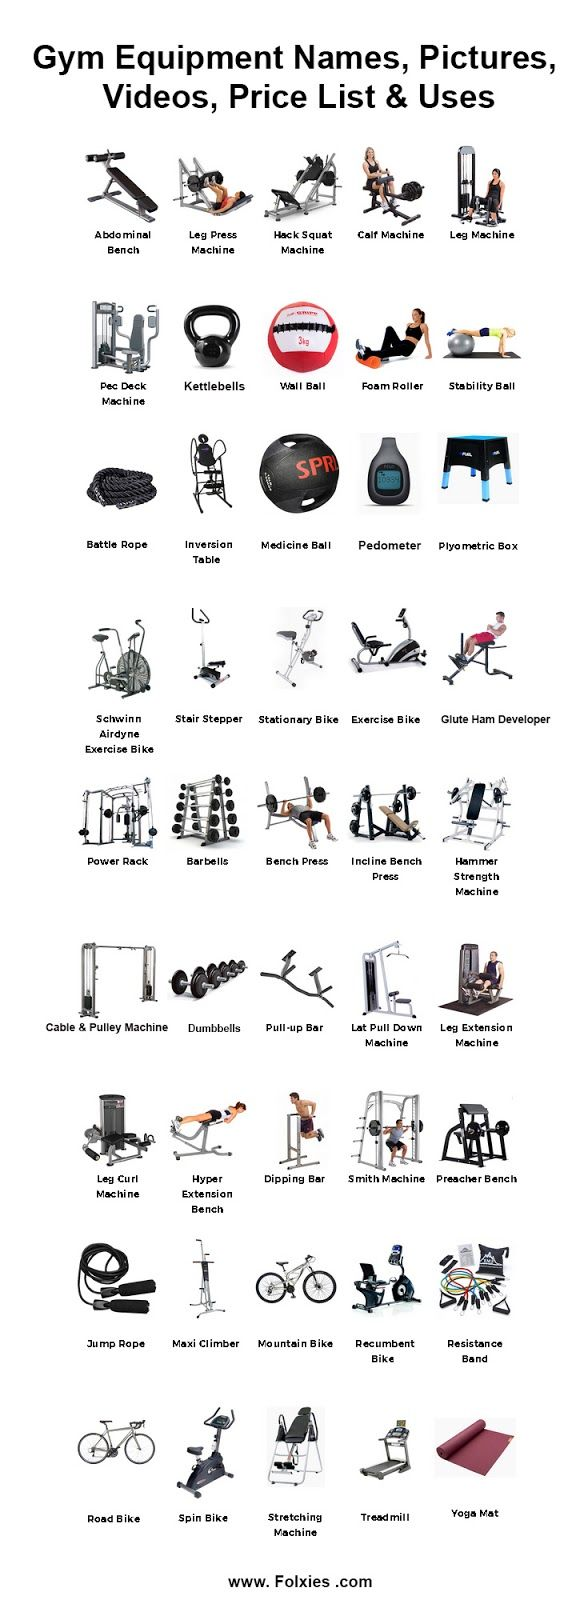 Gym equipment names, pictures, videos, price list and uses